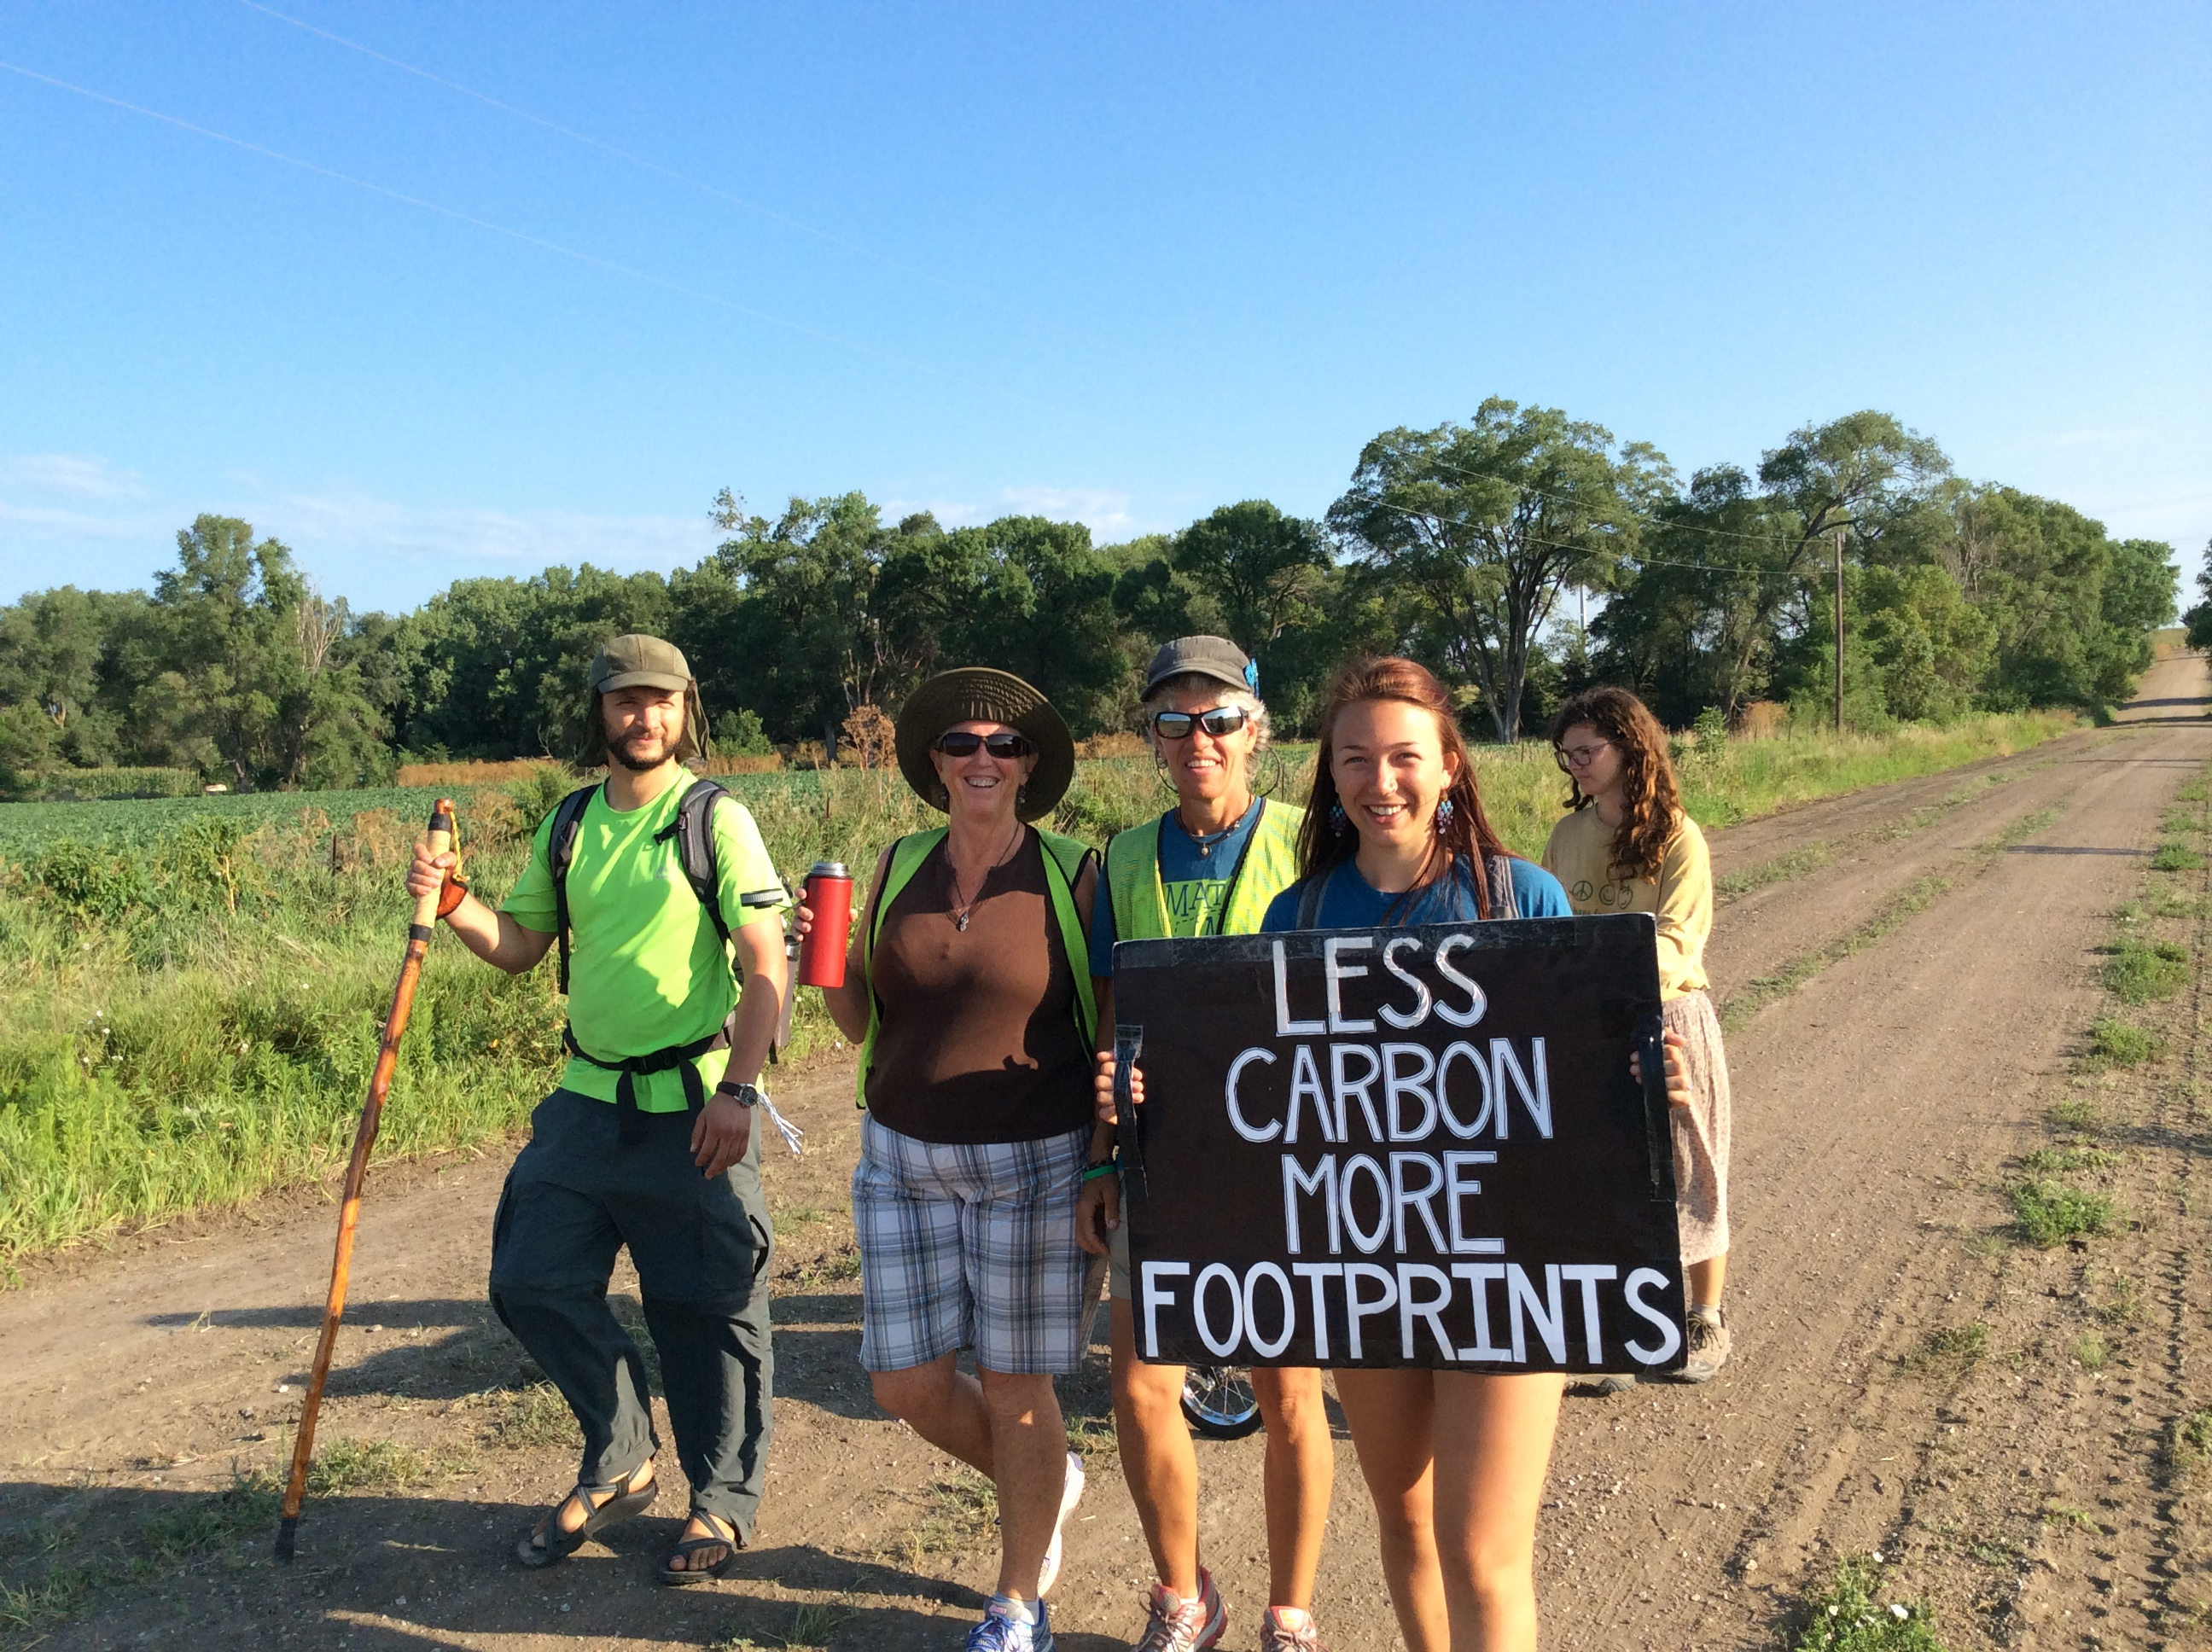 Juliana took part in a cross-country march for climate change awareness in 2014. Photo courtesy of Kelsey Juliana.